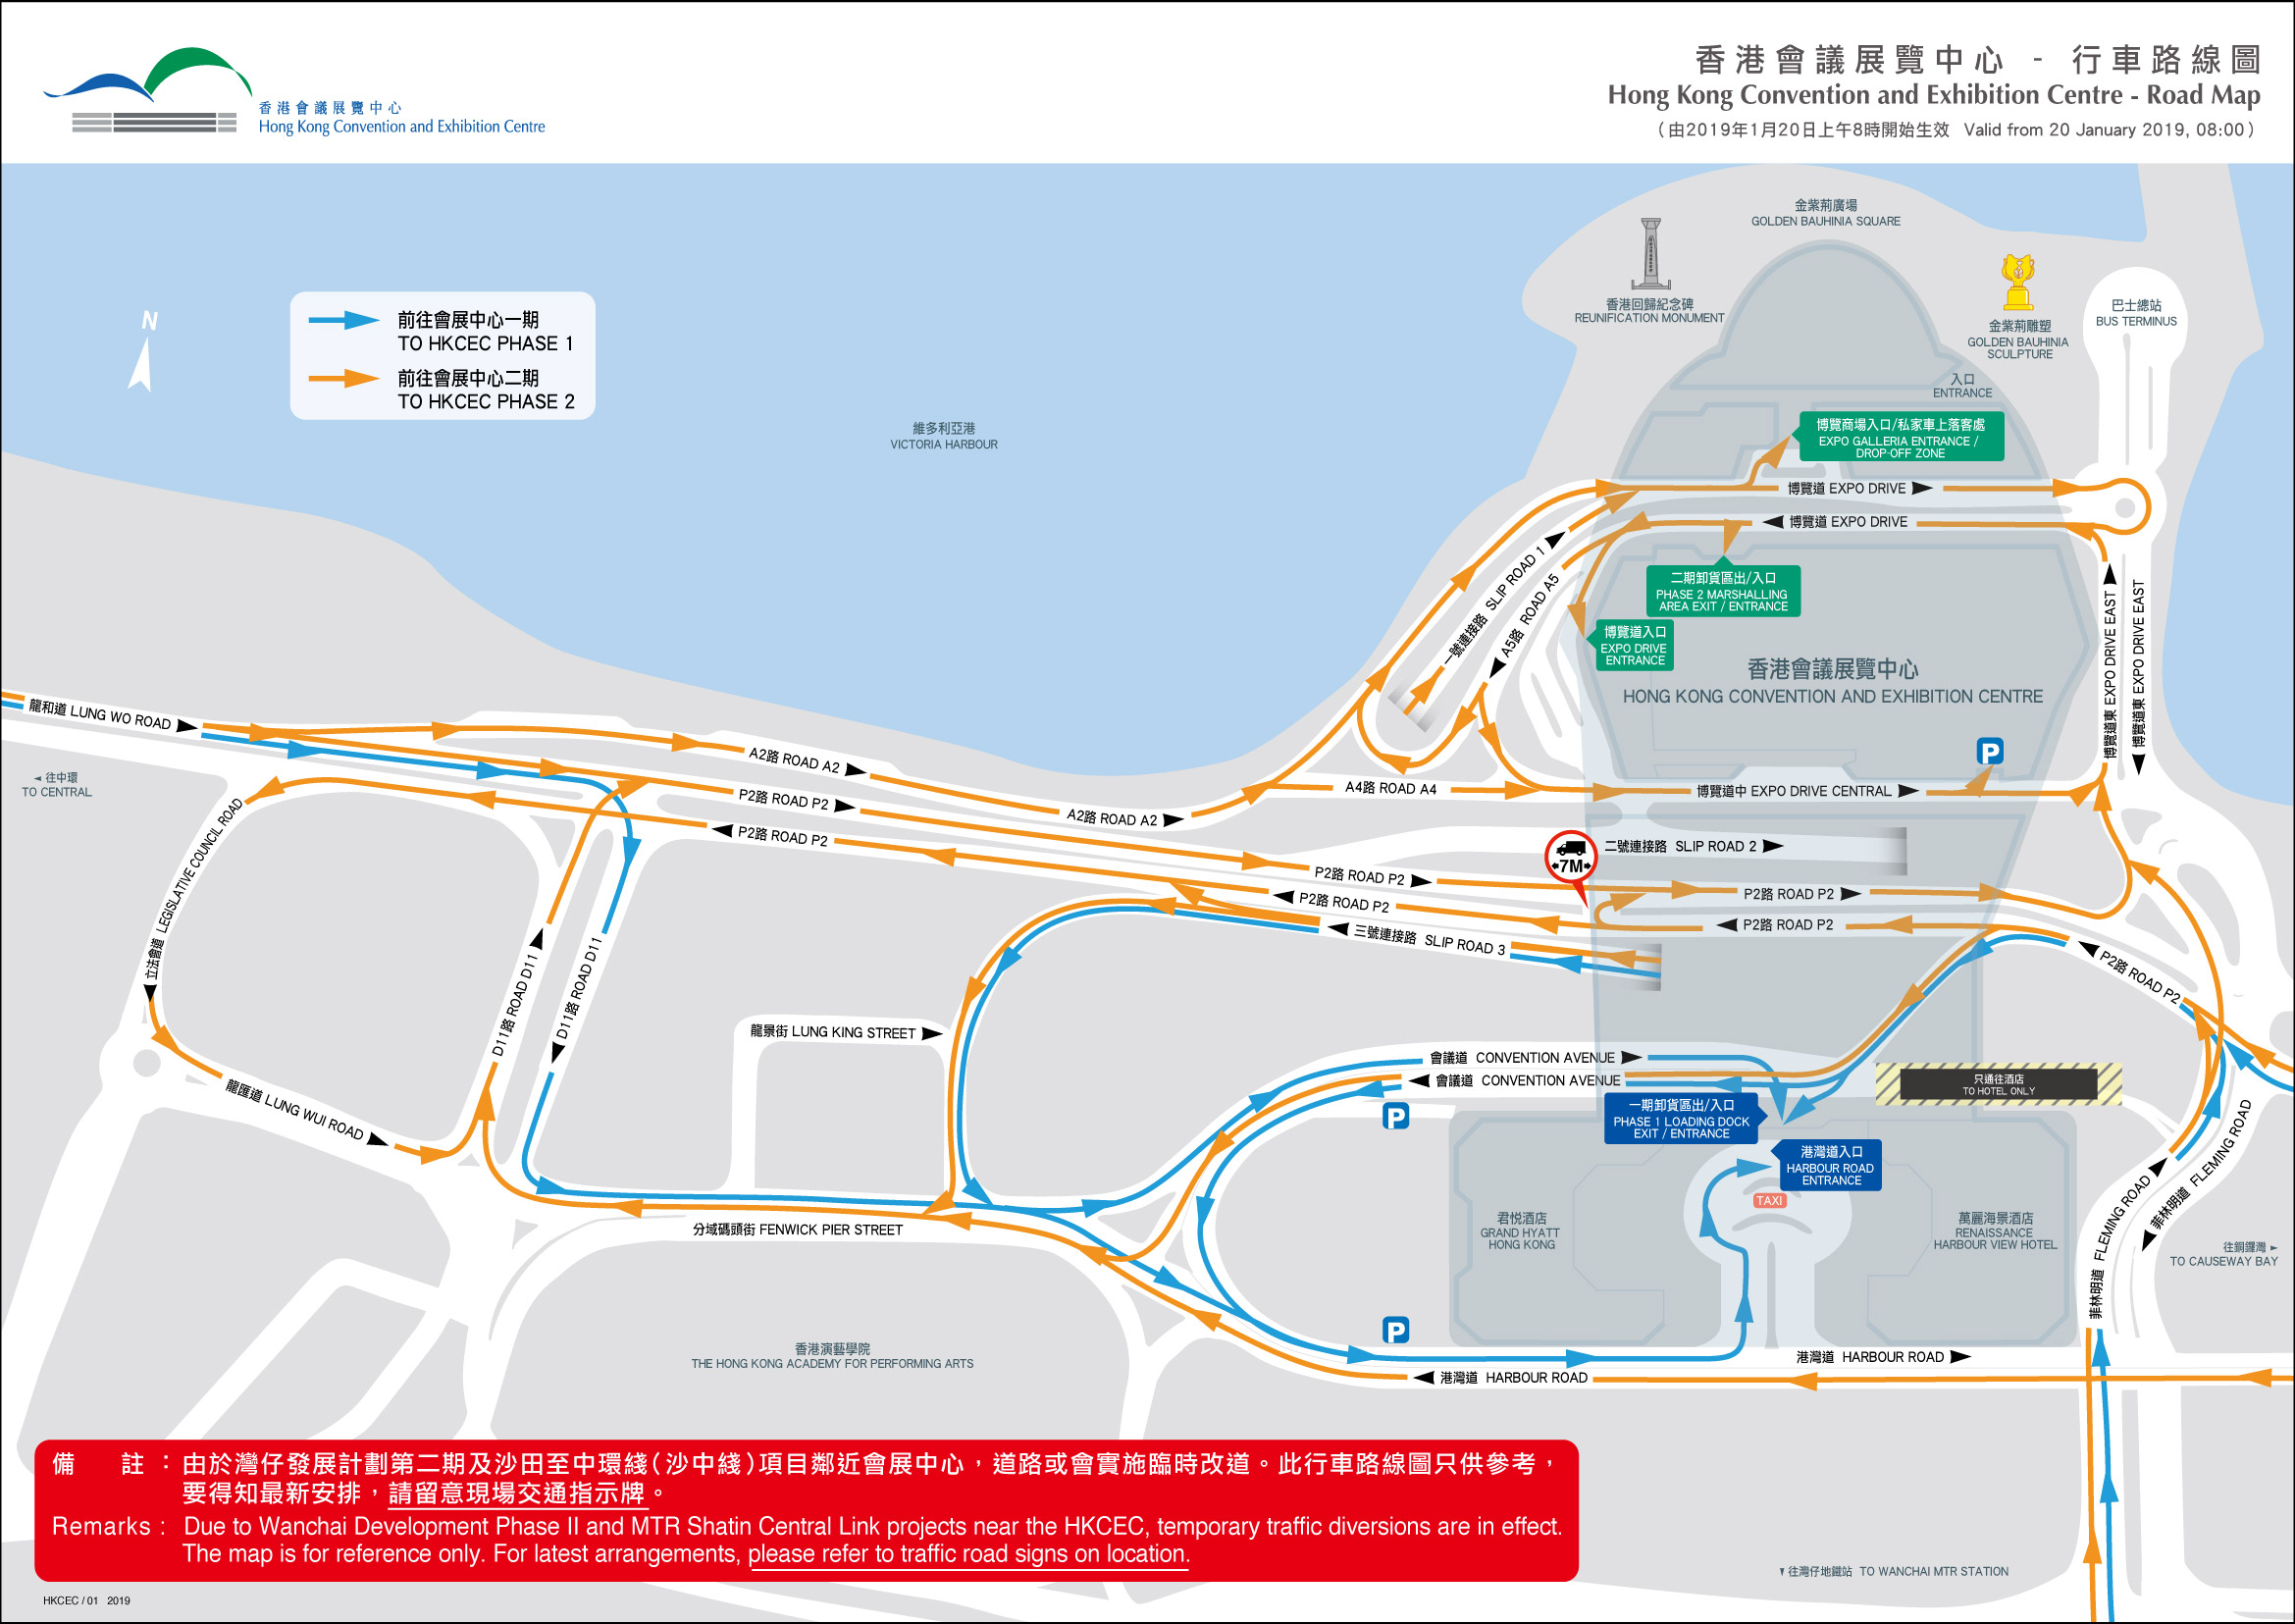 Hong Kong Convention and Exhibition Centre - Road Map